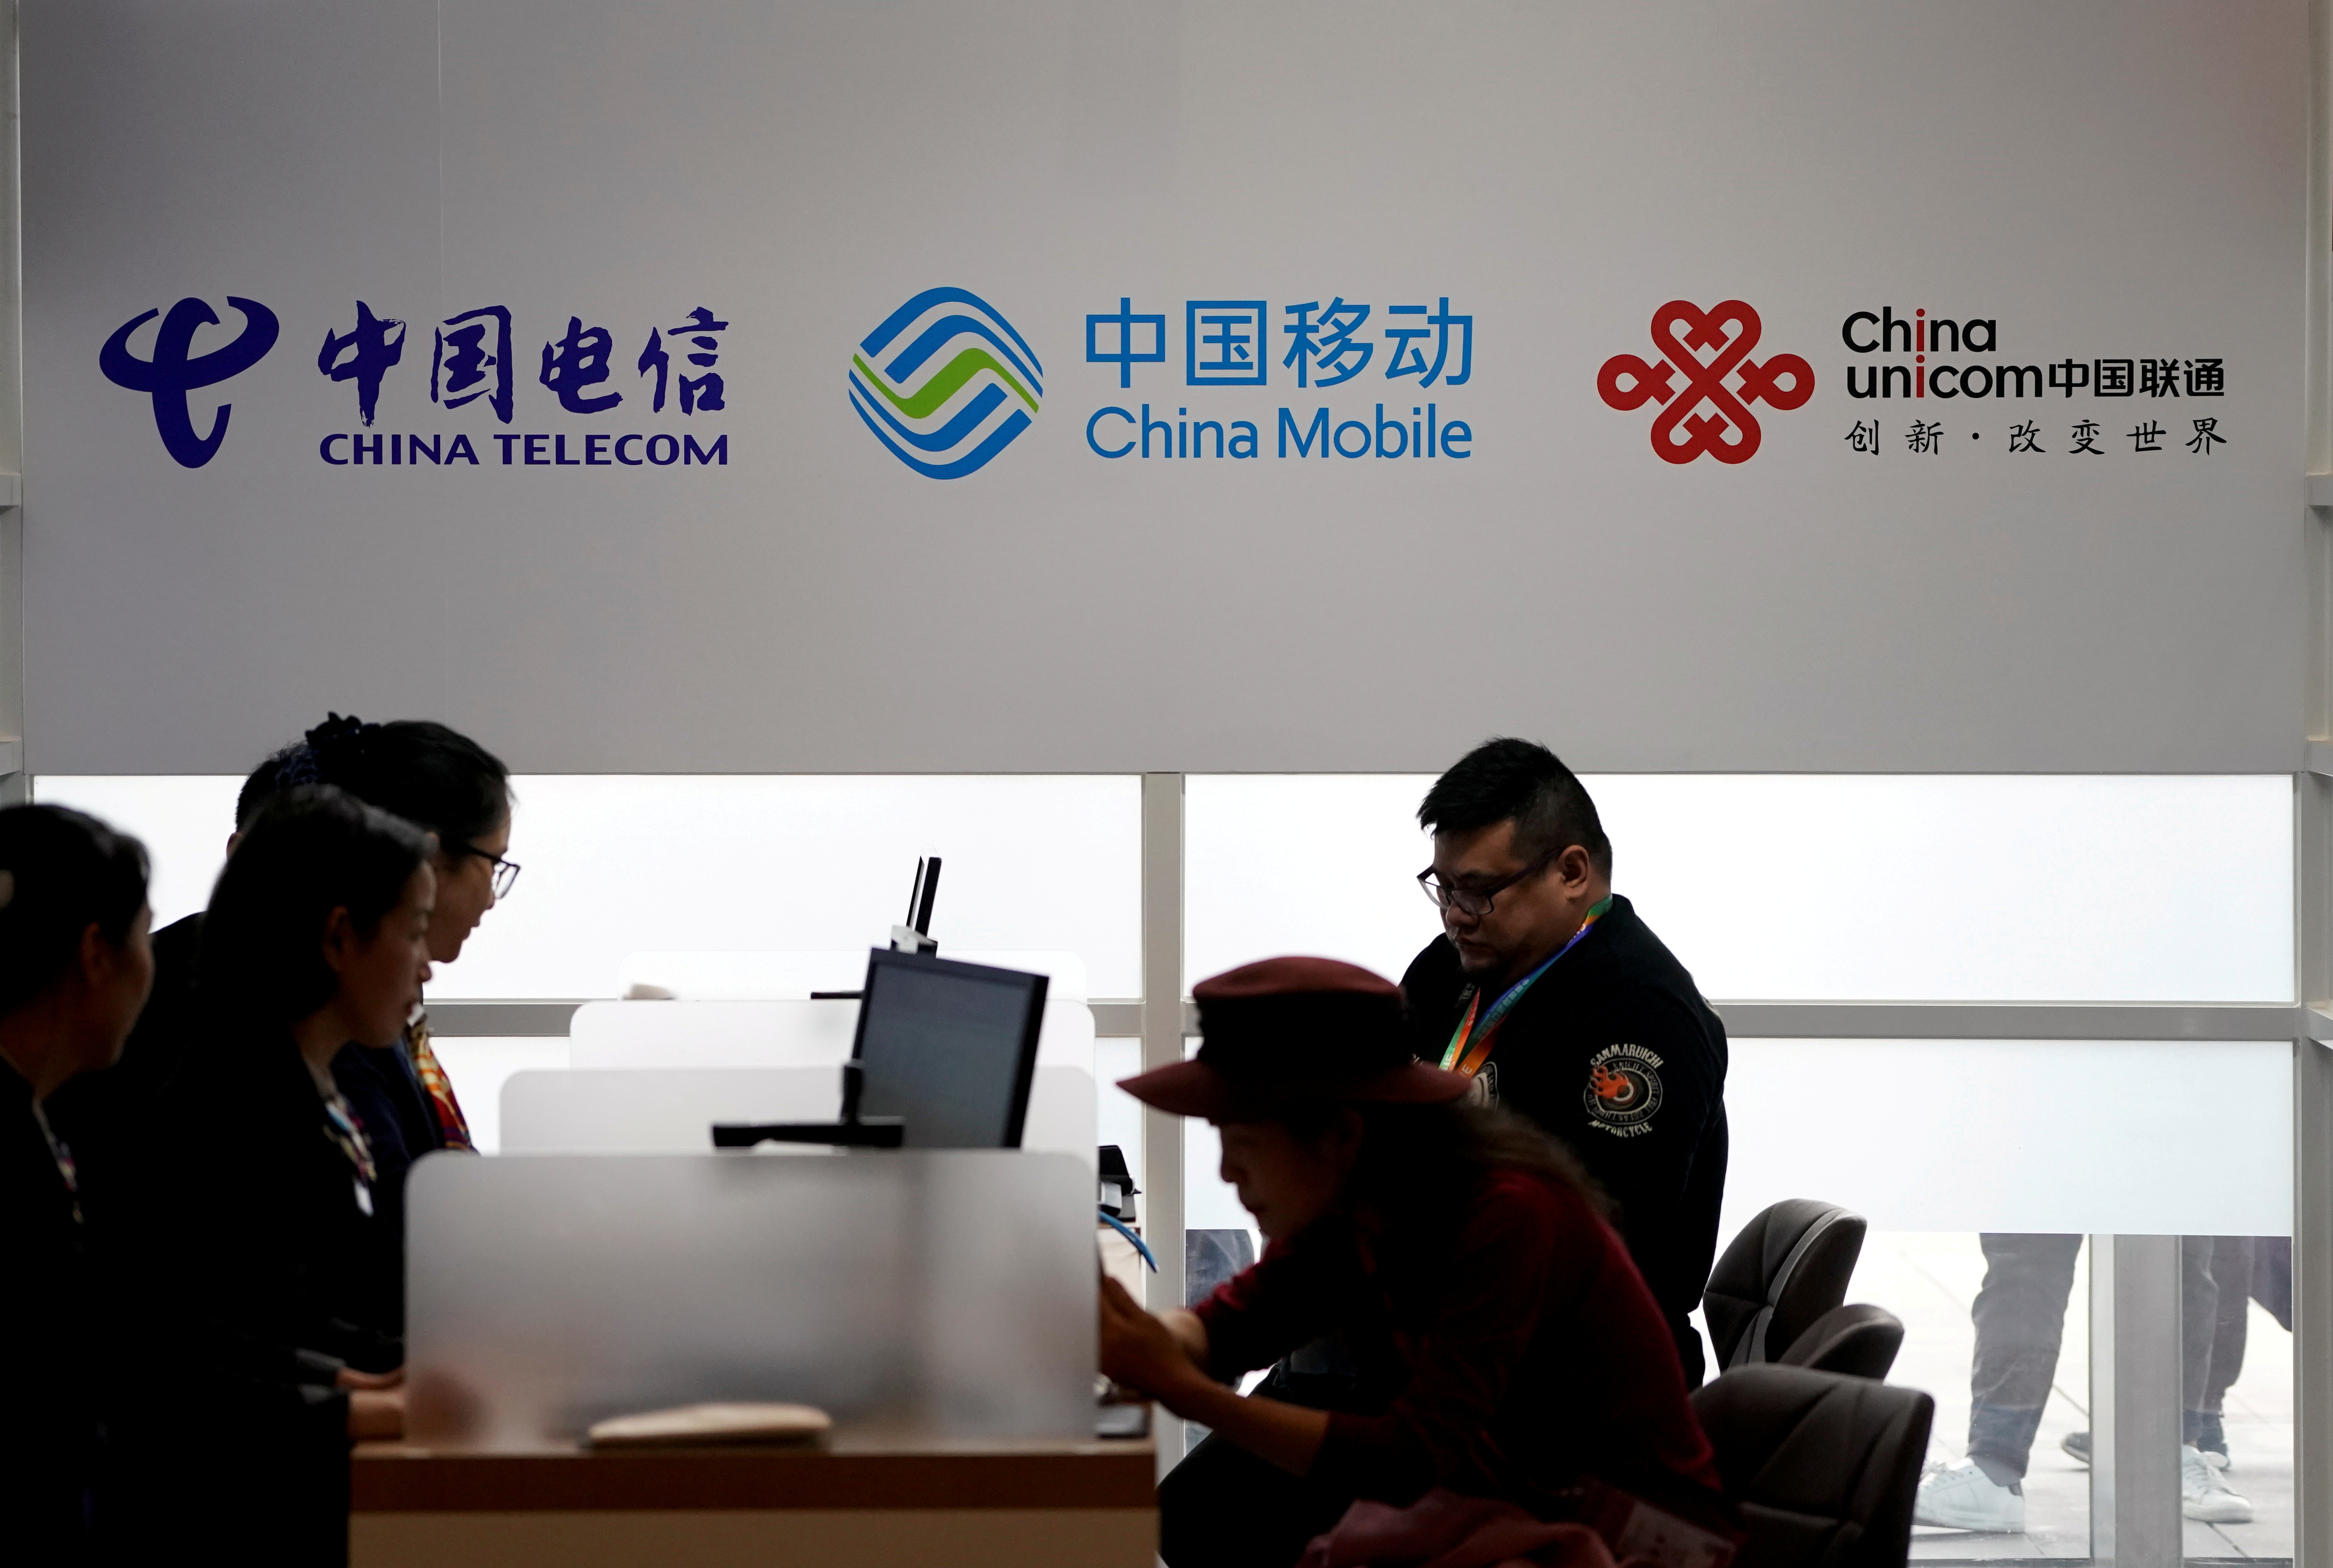 Signs of China Telecom, China Mobile and China Unicom are seen during the China International Import Expo (CIIE) at the National Exhibition and Convention Center in Shanghai, China, Nov. 5, 2018. REUTERS/Aly Song/File Photo